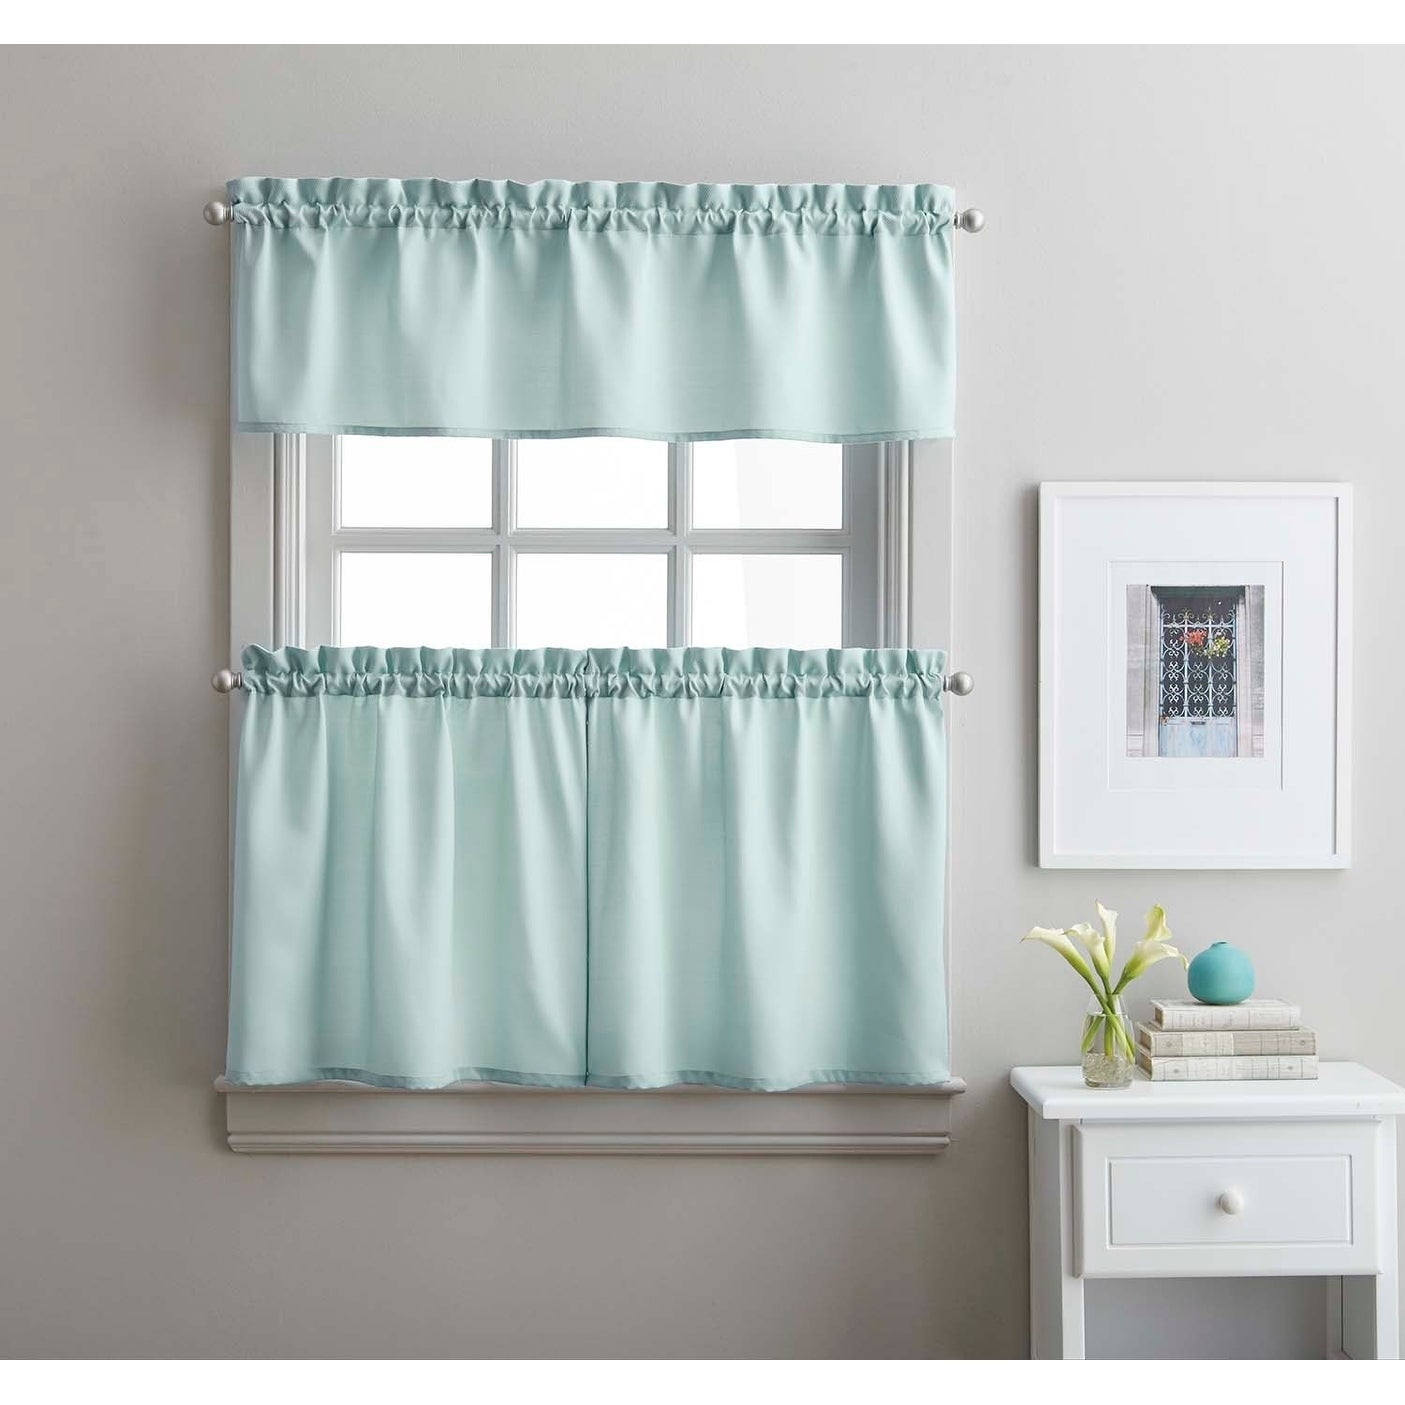 Twill 3 Piece Kitchen Curtain Tier Set Regarding Solid Microfiber 3 Piece Kitchen Curtain Valance And Tiers Sets (View 2 of 20)